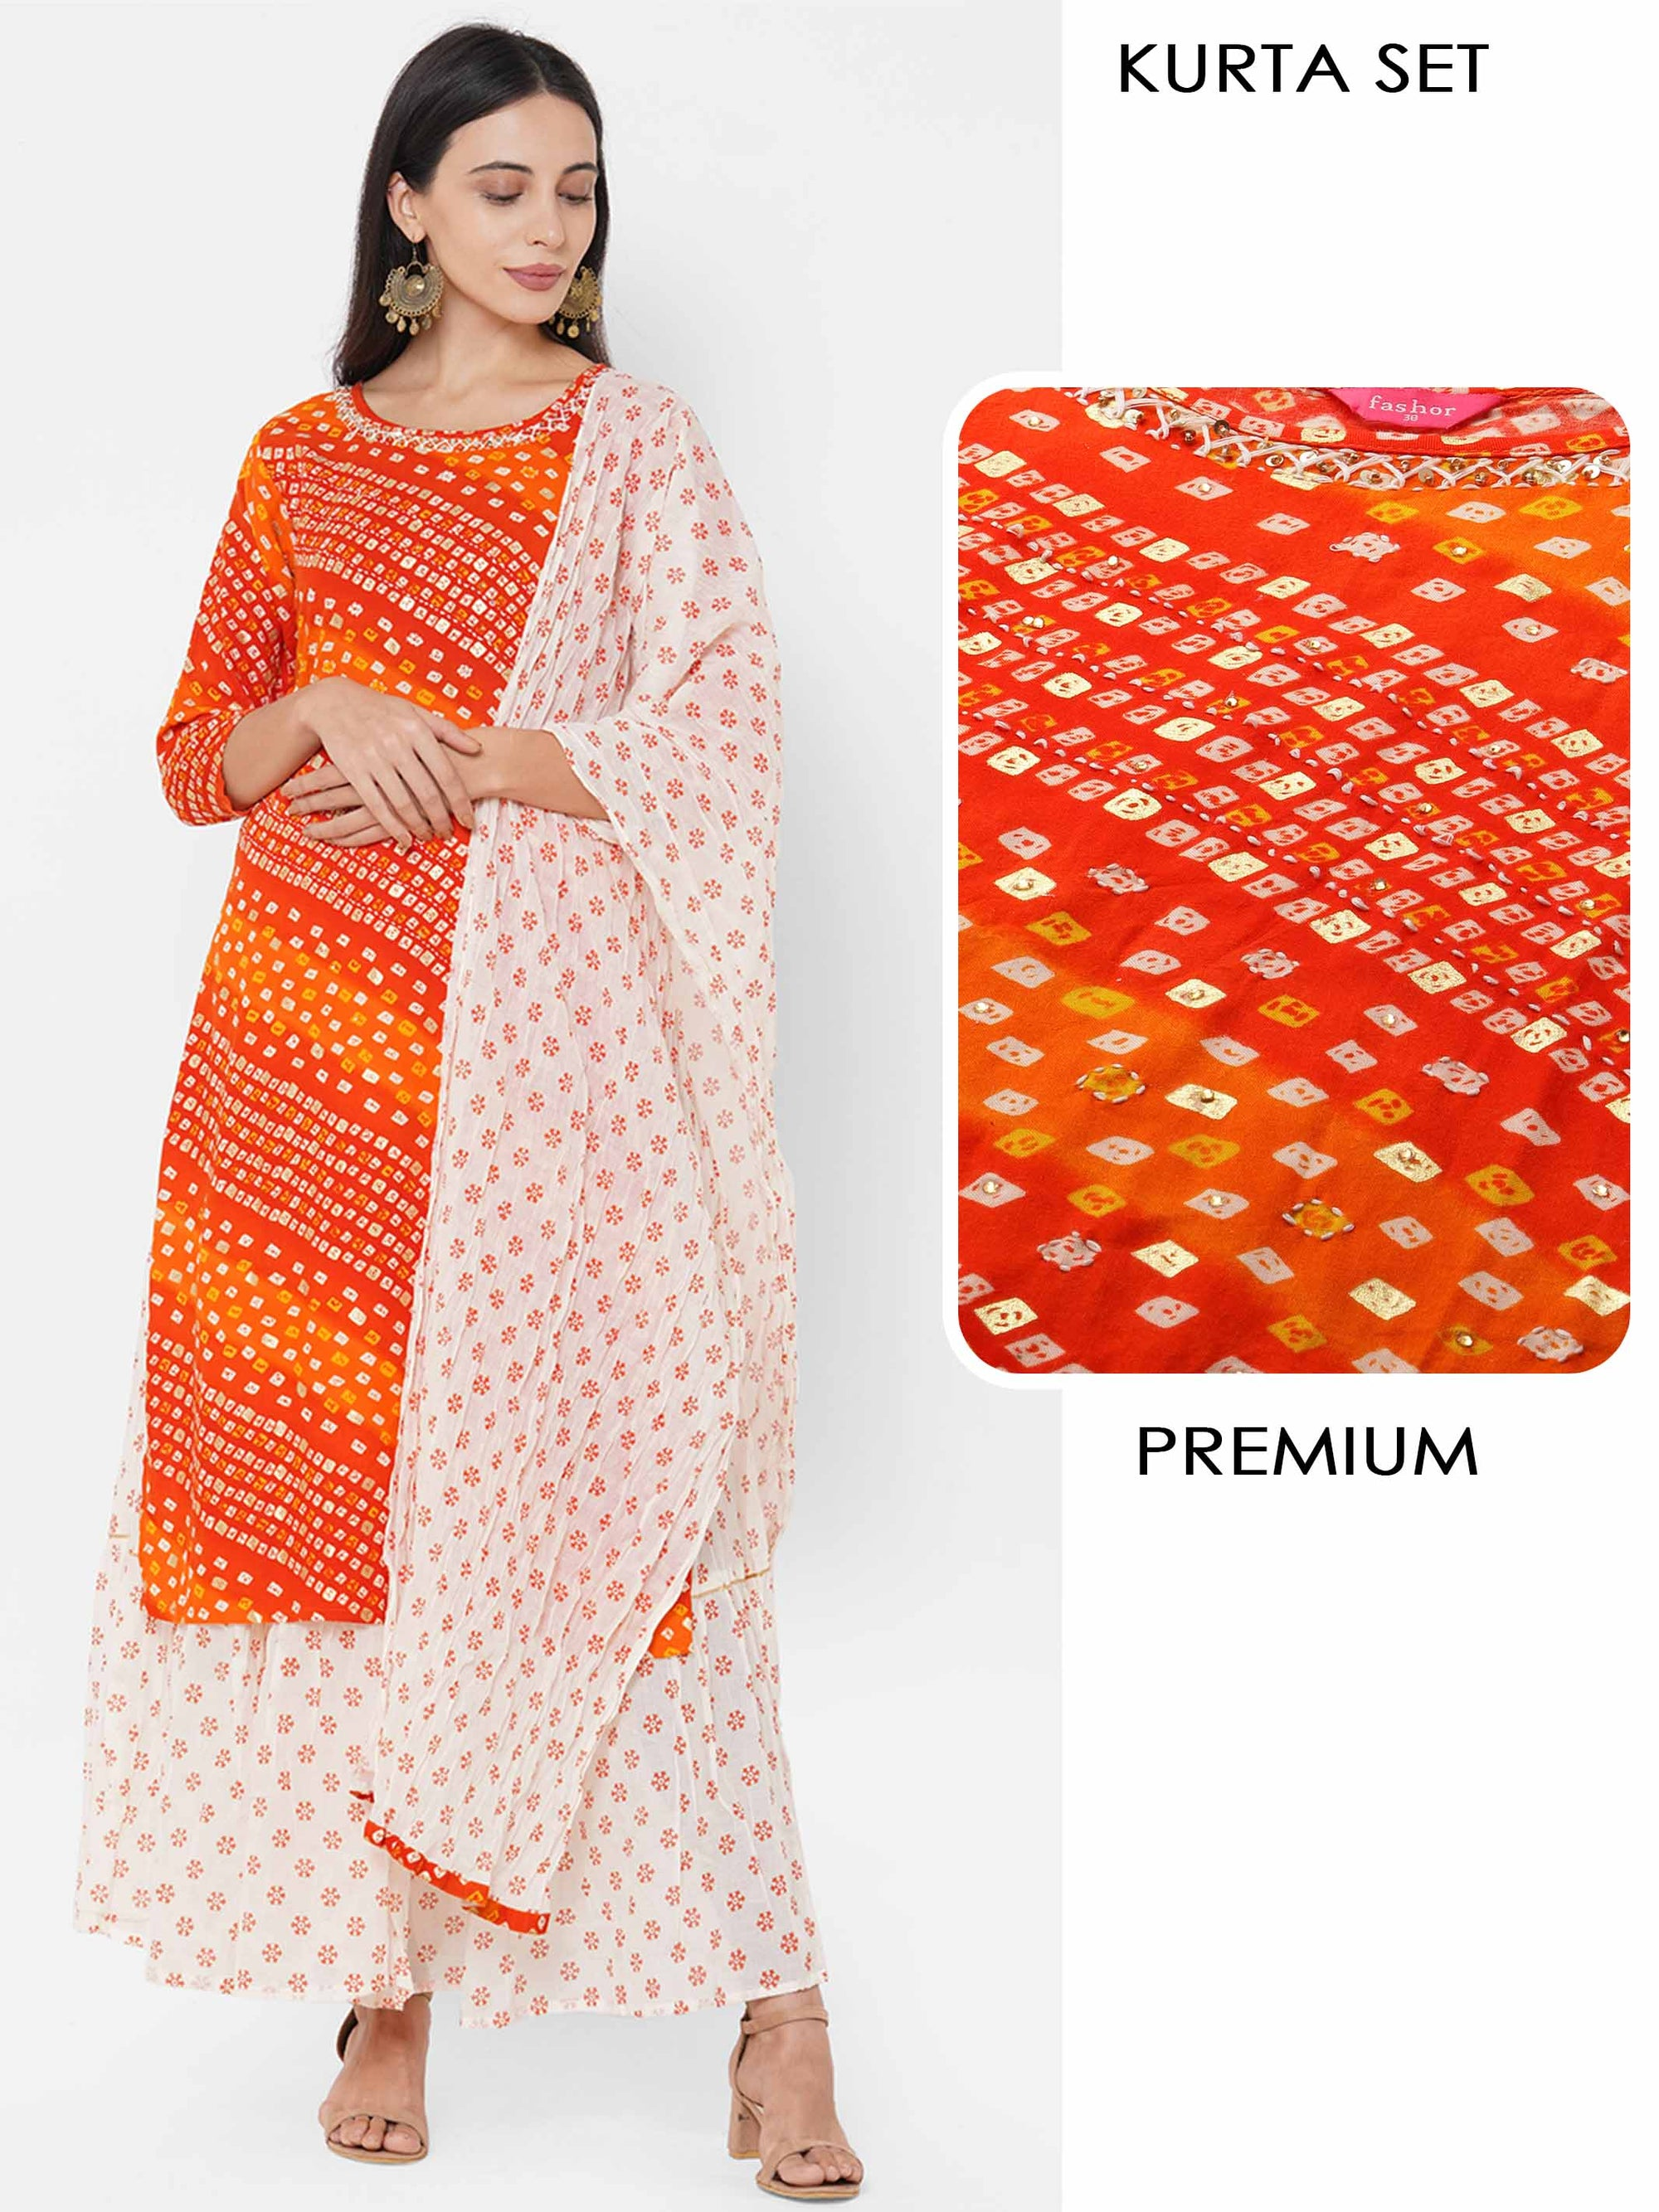 Bandhani Printed & Embroidered Kurta with Ethnic Printed Skirt & Ethnic Printed Dupatta - Tangerine